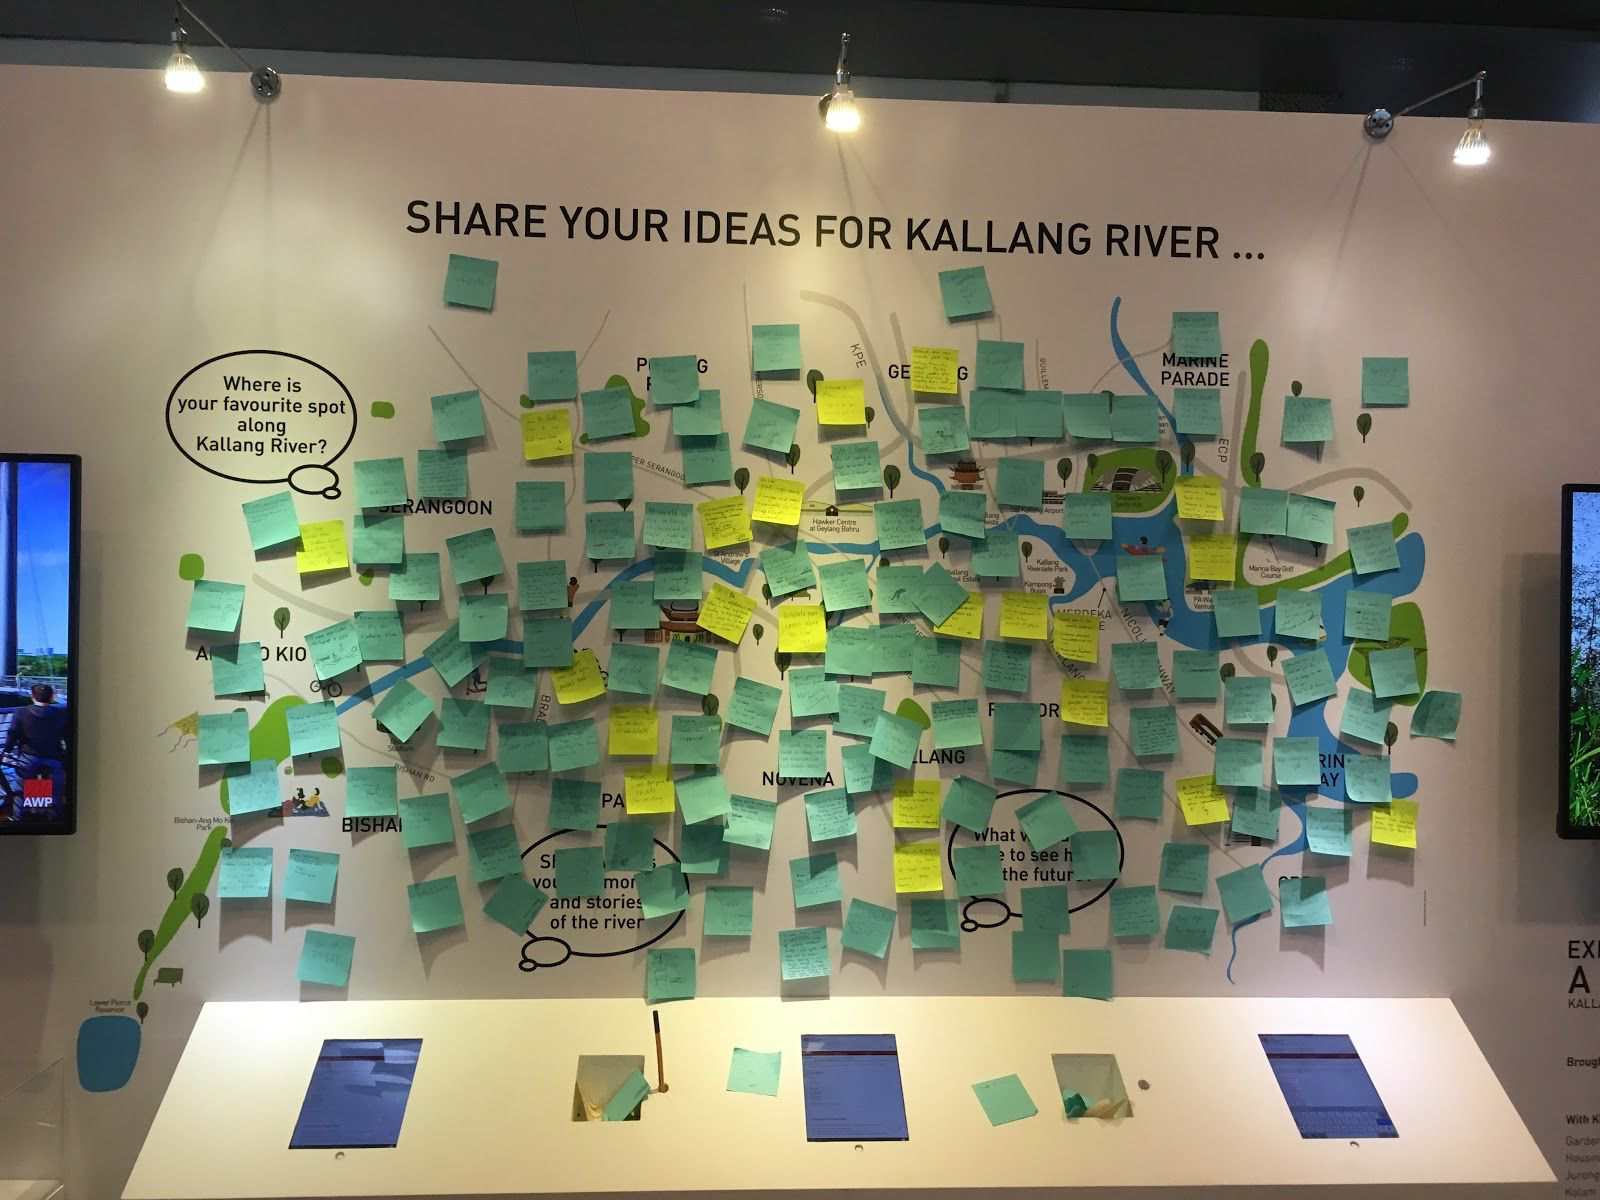 Kallang River Idea Board